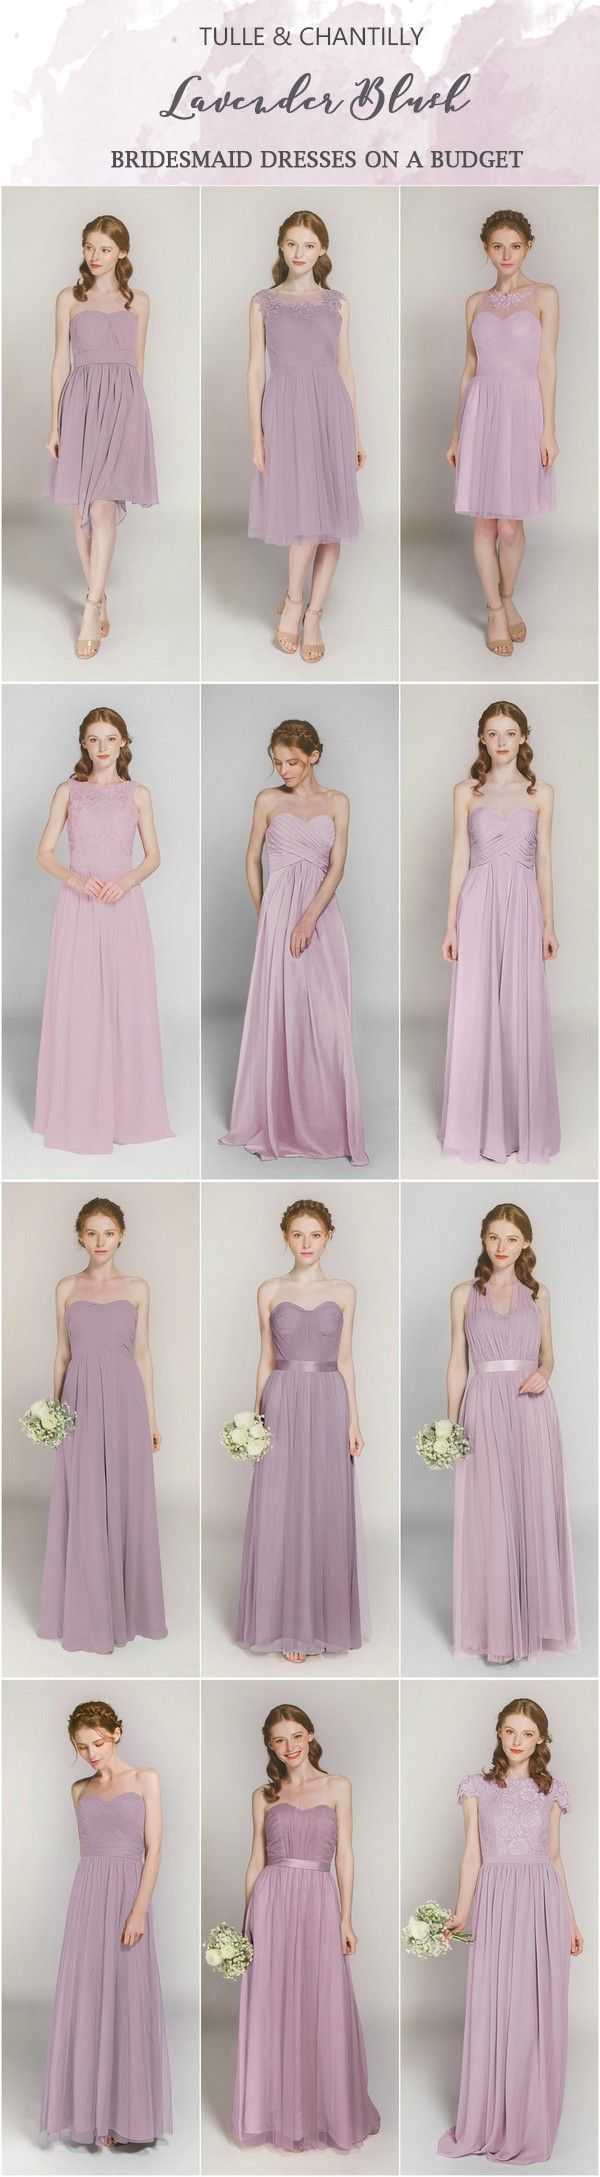 Lavender Blush bridesmaid dresses on a budget